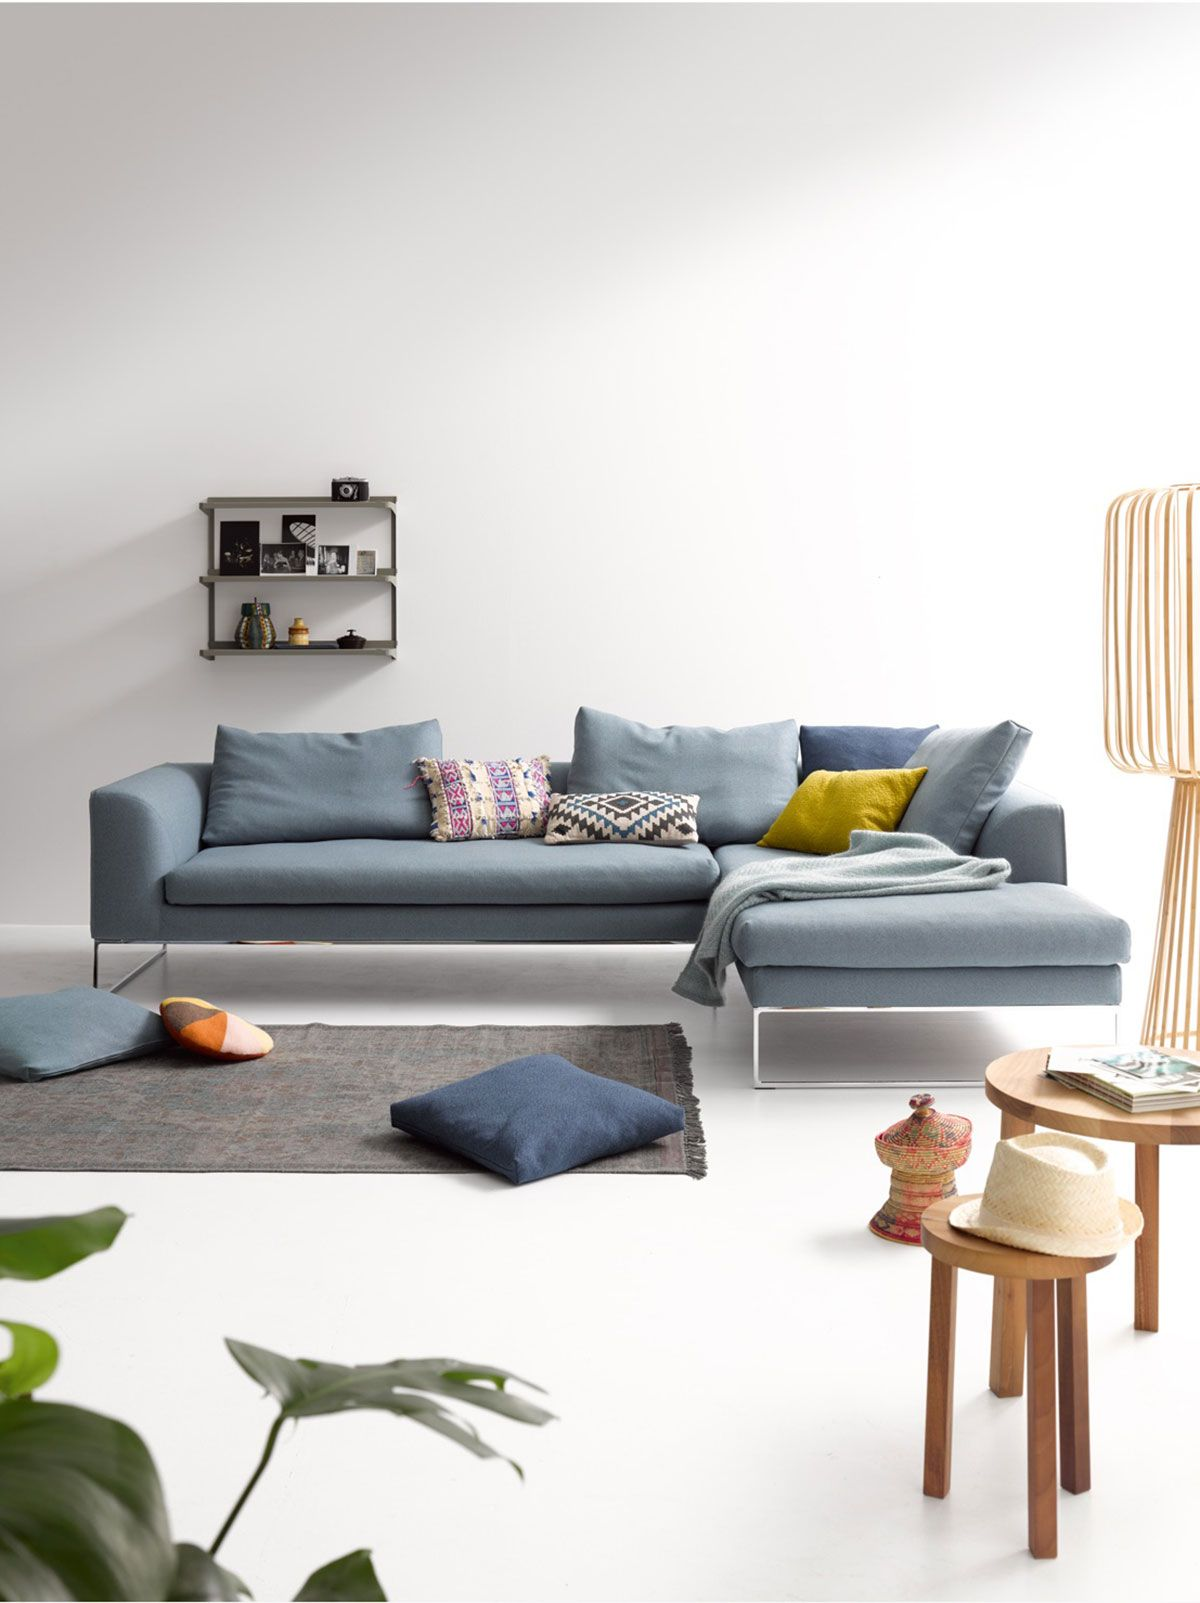 Sofa Wohnzimmer Mell Lounge Sofa Cor Home Inspiration In 2019 Lounge Sofa